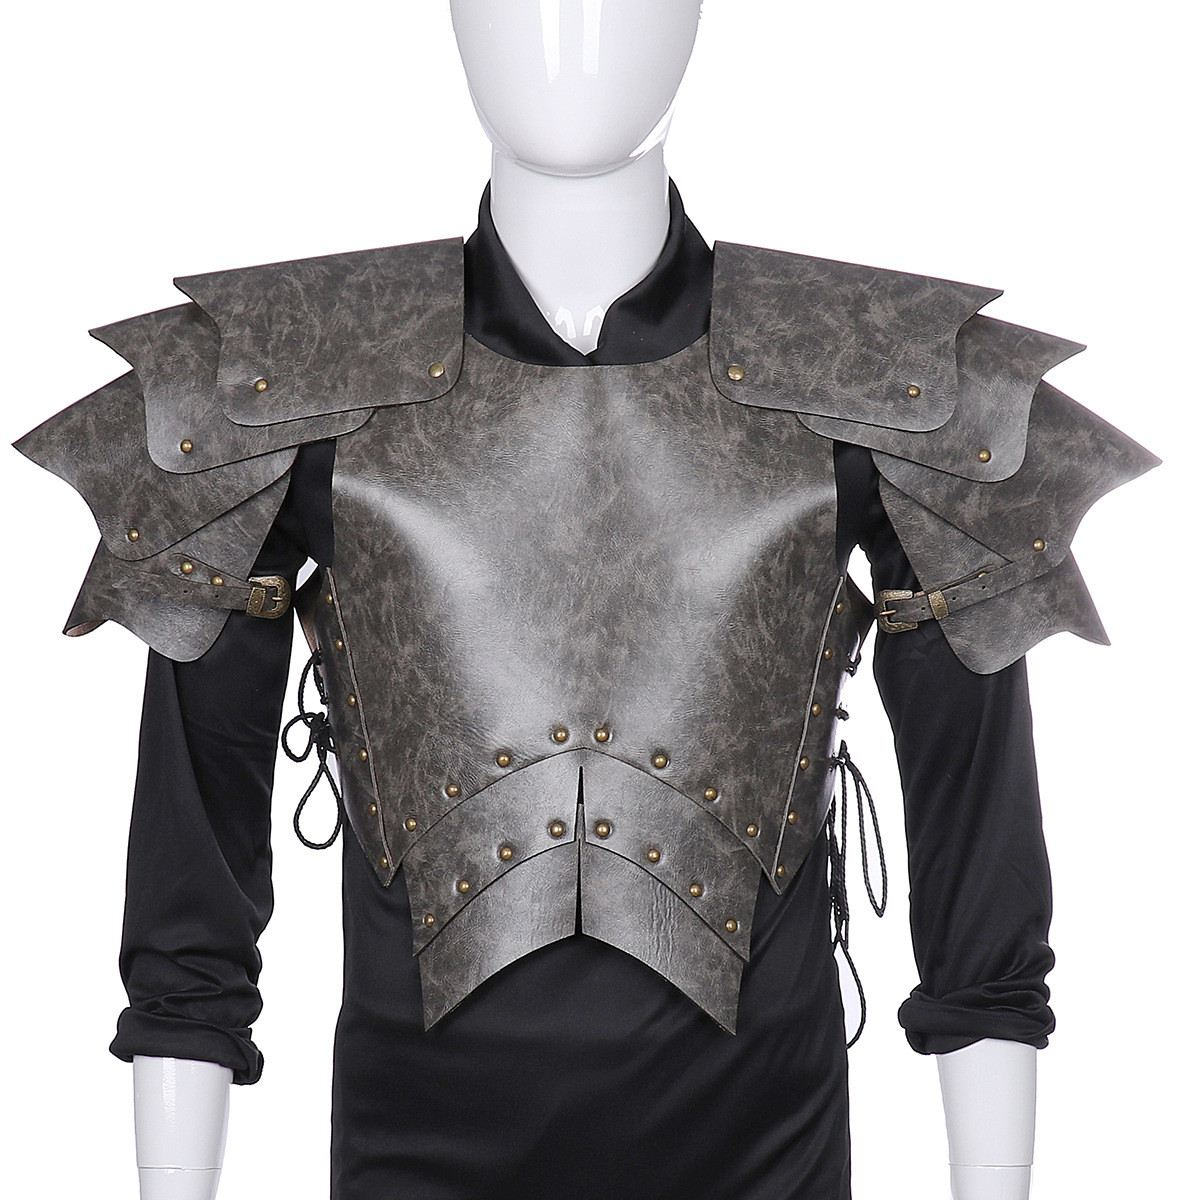 Warrior Lace-up Men Armor Samurai Adult Stage Party Cosplay Costume Soft Halloween Gift PU Leather Photo Props(China)